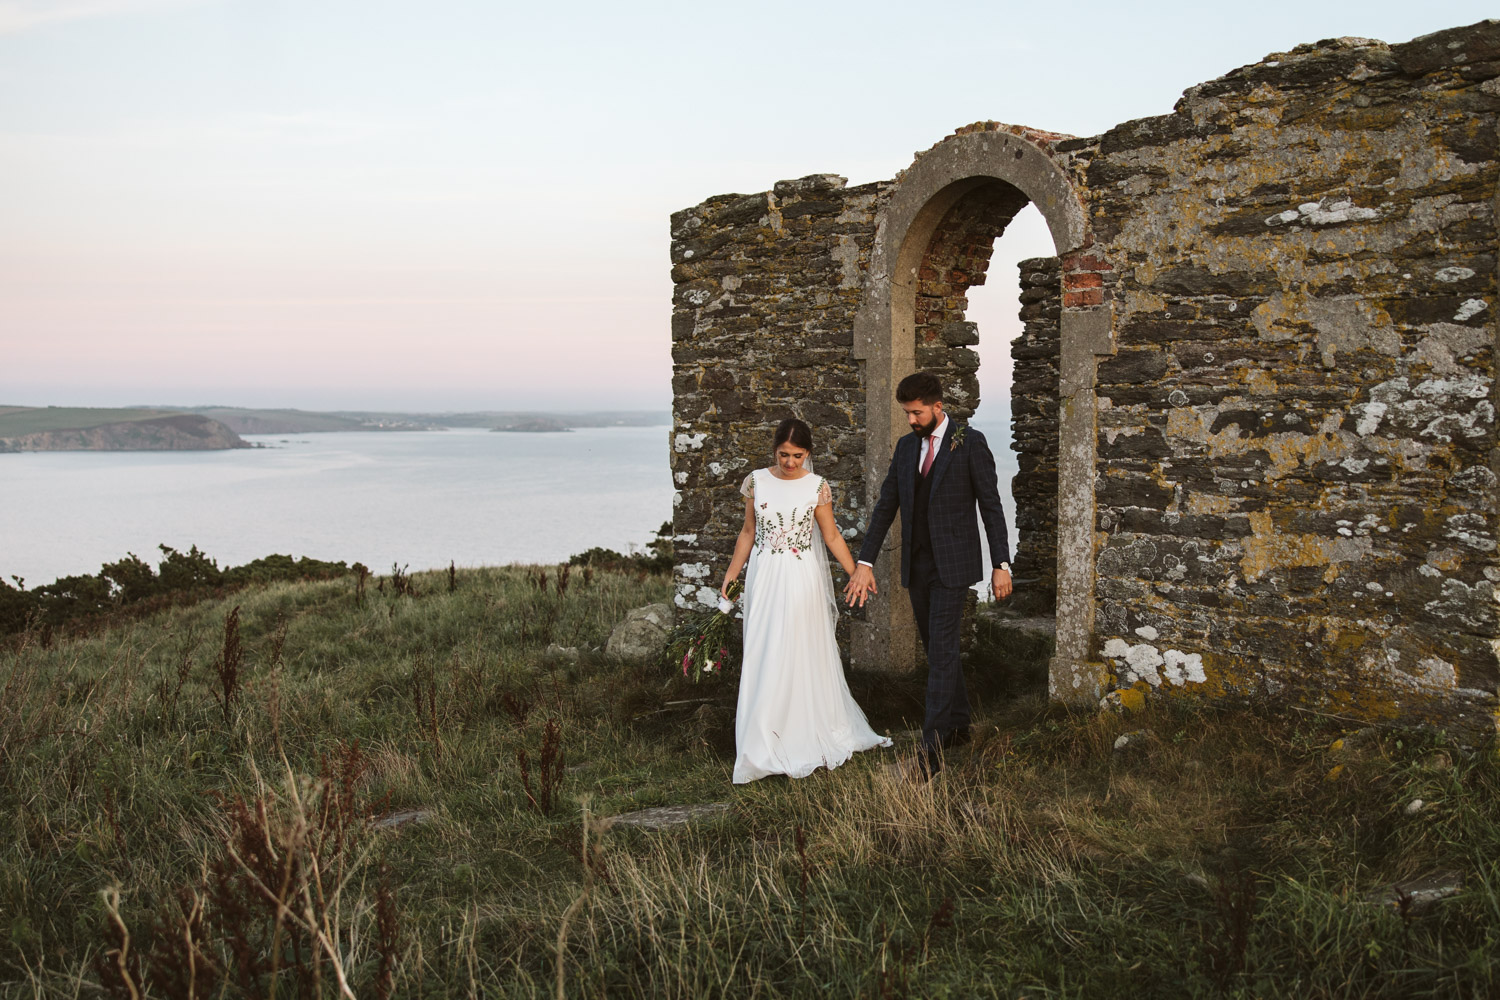 the couple walking away from the ruins with a beautiful scenery view